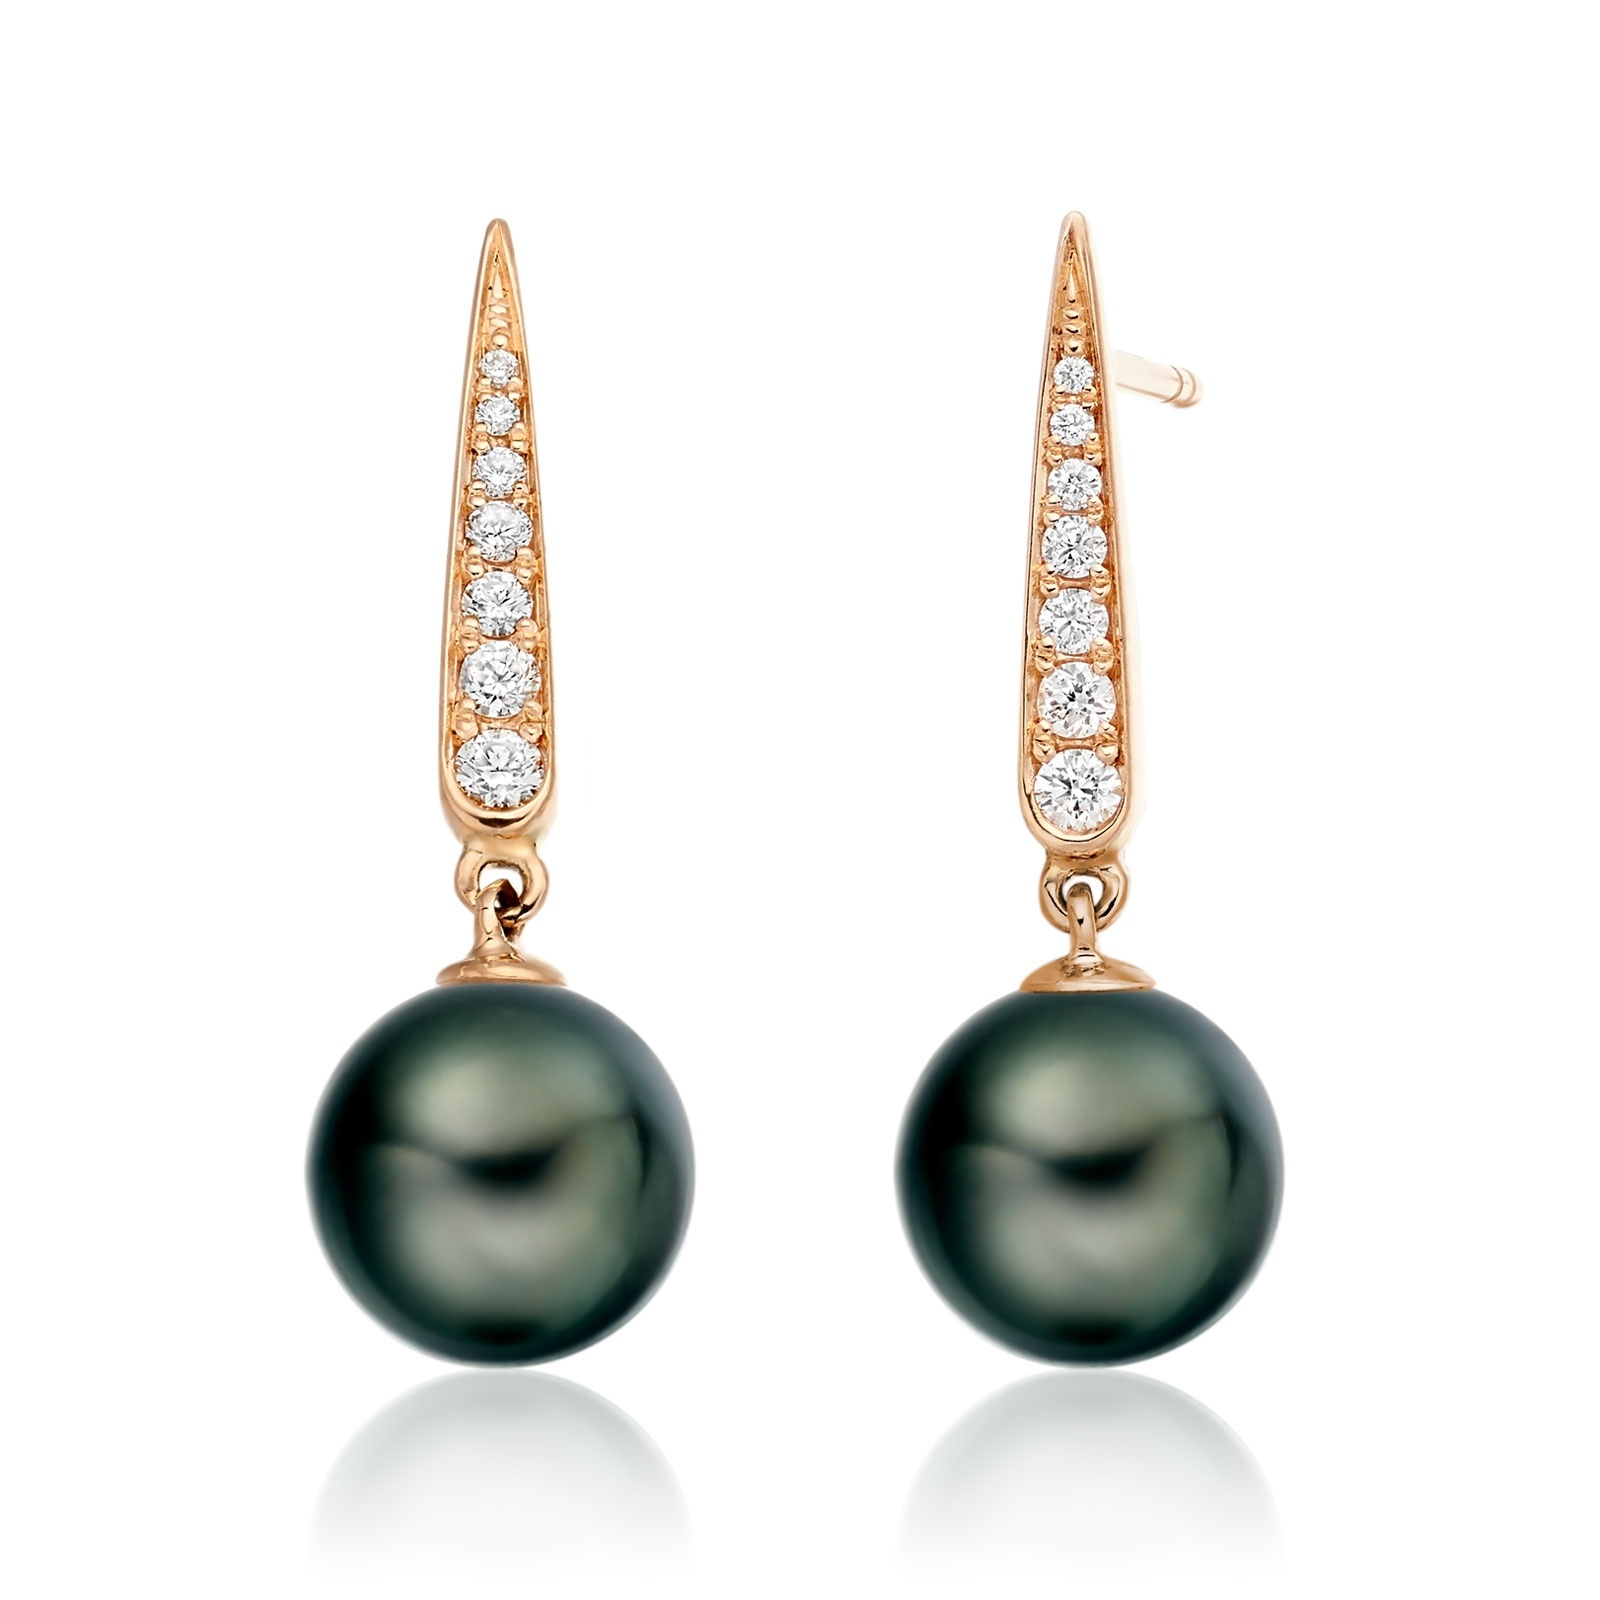 Mythologie Dark Dewdrop Tahitian Pearl Earrings in Rose Gold-TEBRRG1281-1